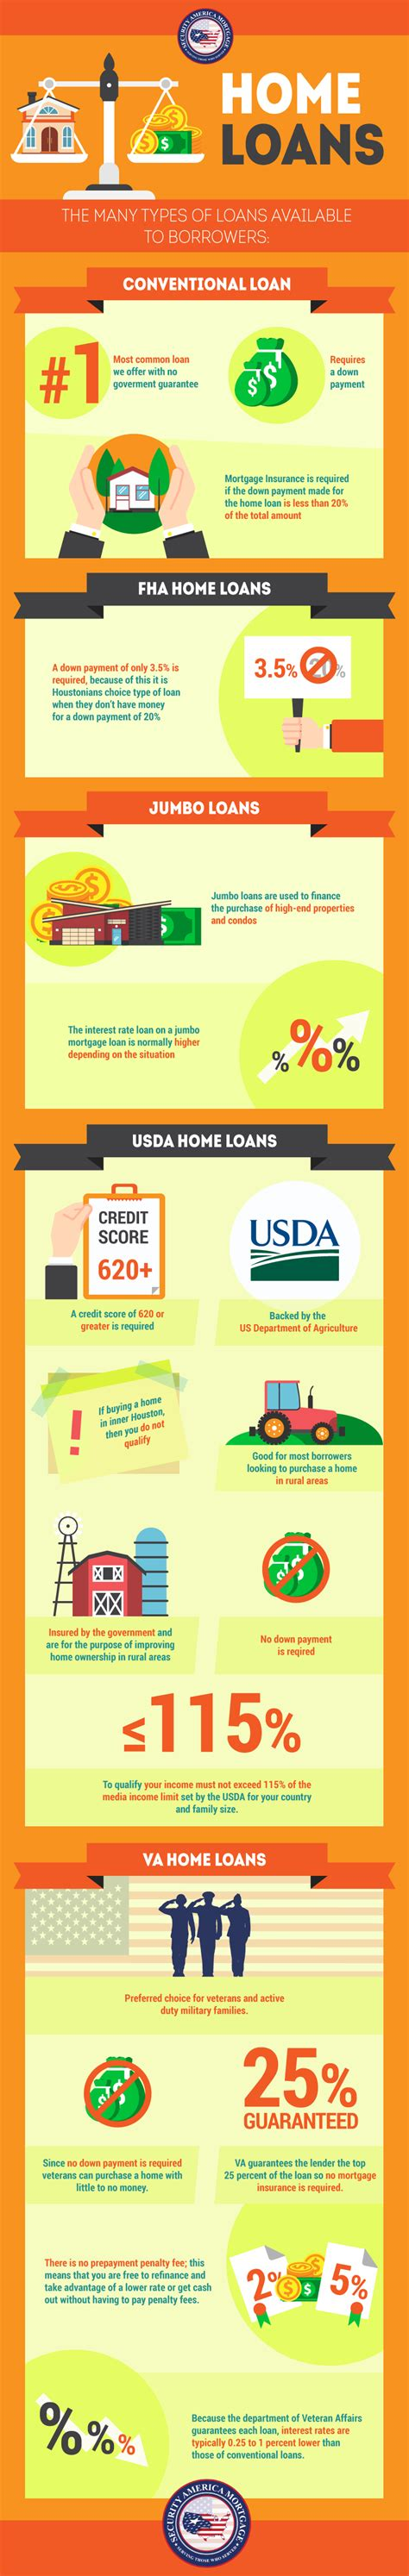 veterans house loan va house loan calculator non va home loan options infographic